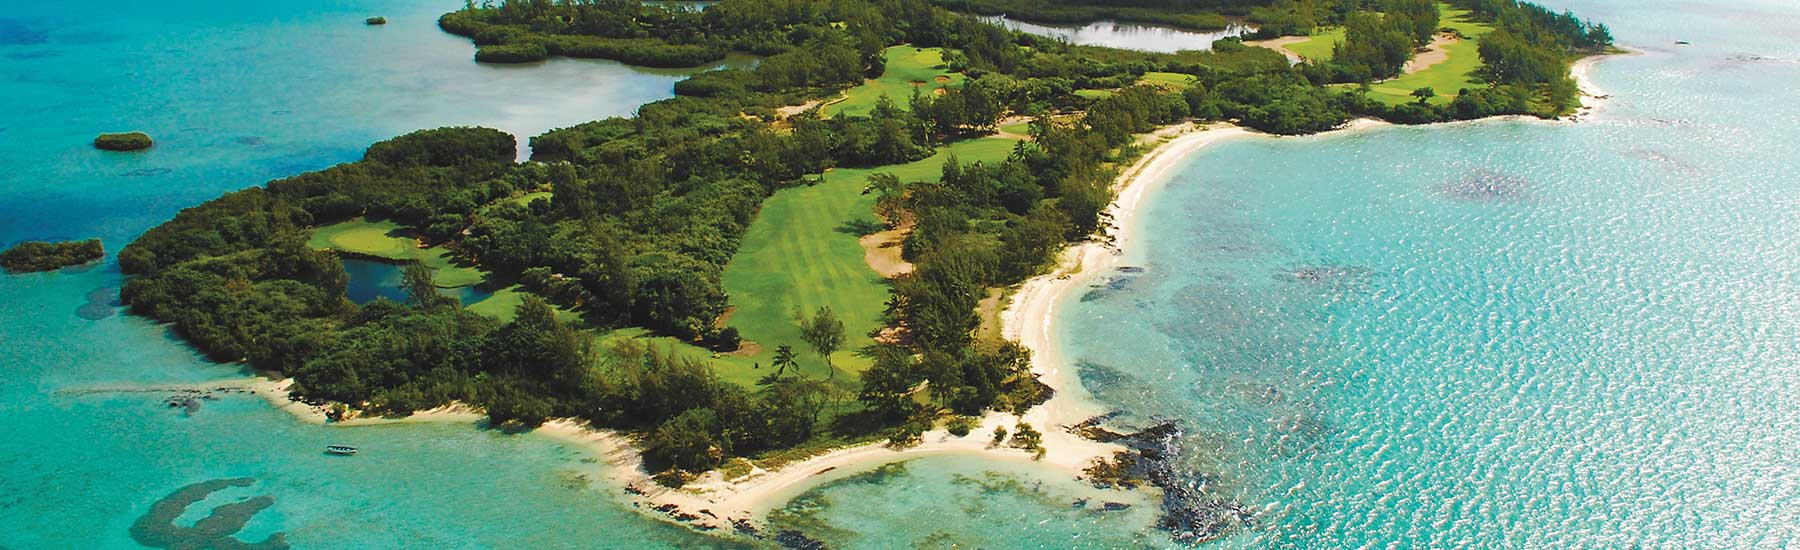 Best Golf Holes in the World – The Ultimate 18